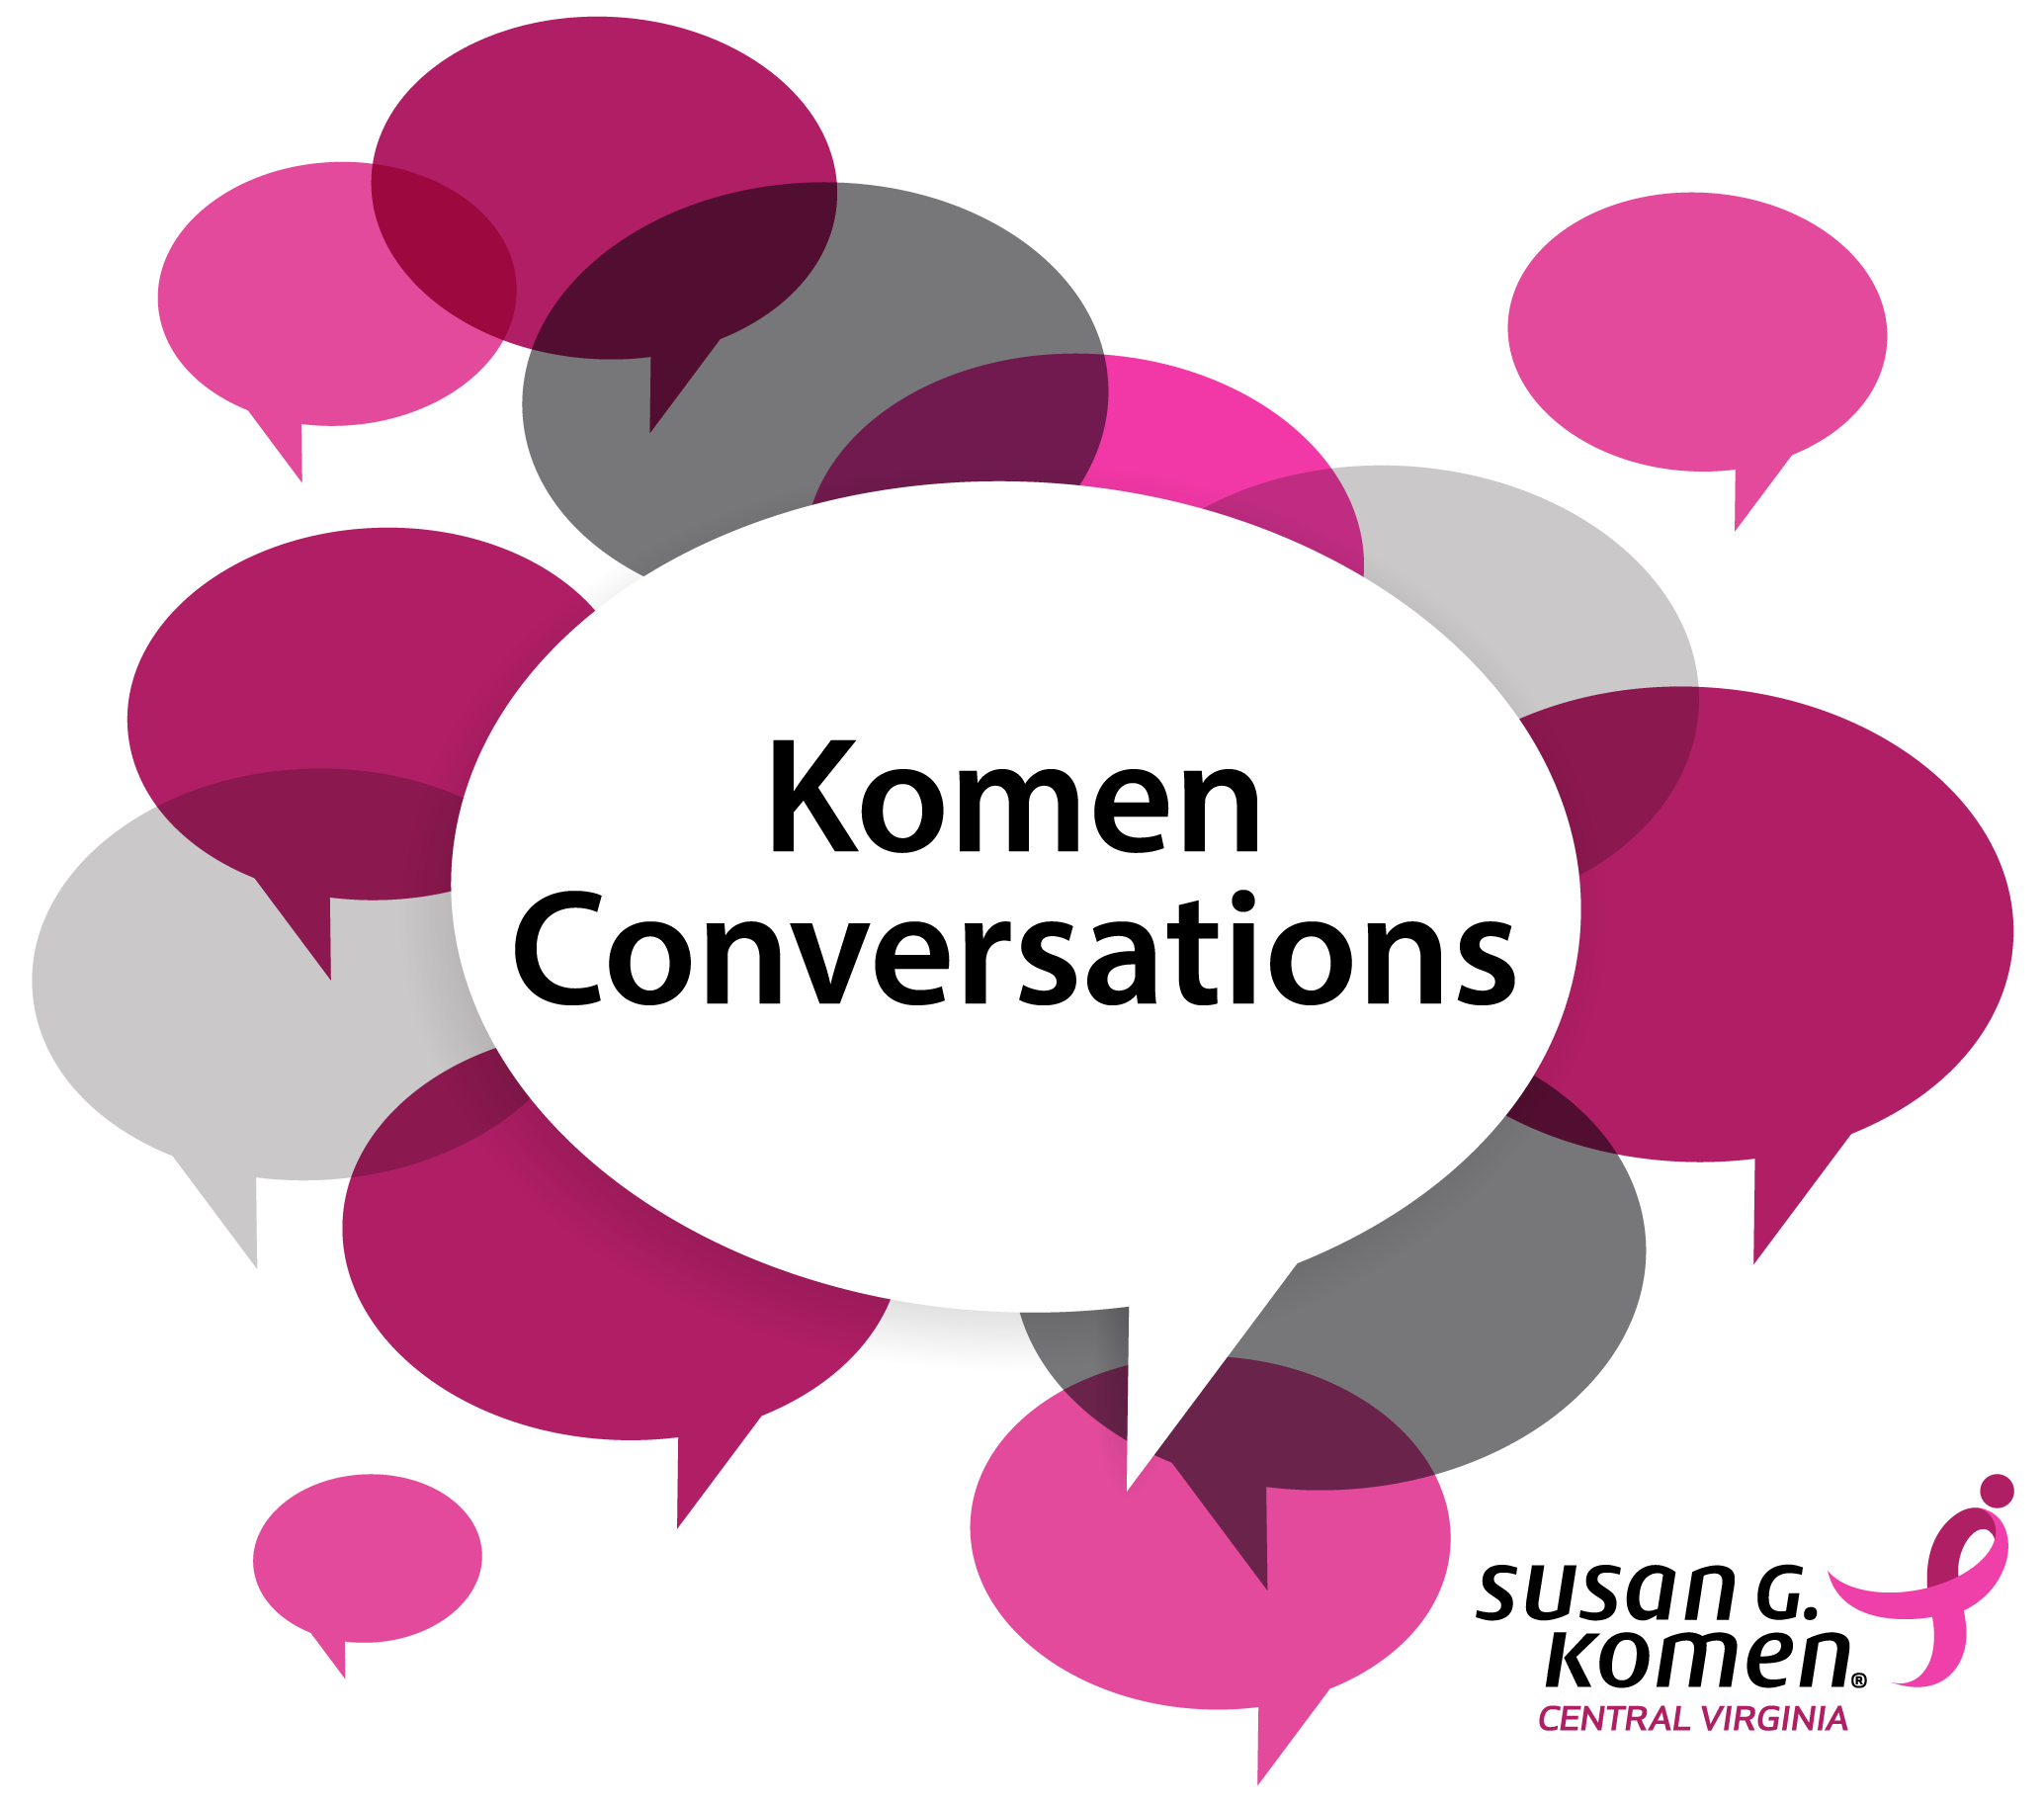 Komen Conversations square logo with white background